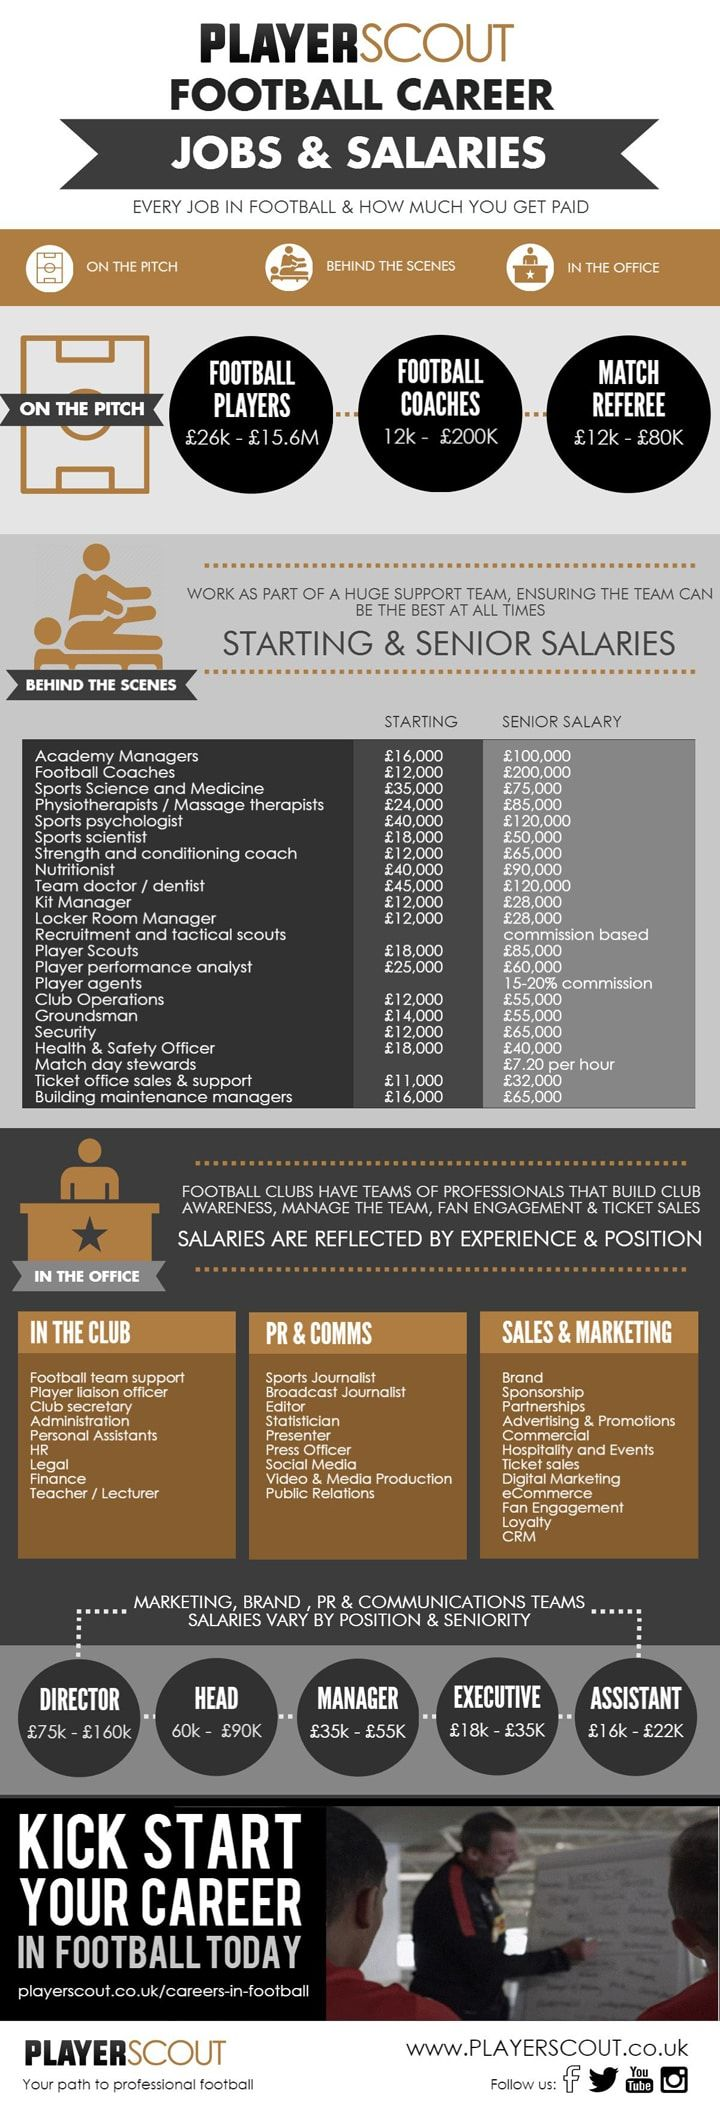 Careers In Football Jobs & Salaries  Find out how much you can earn working in football.